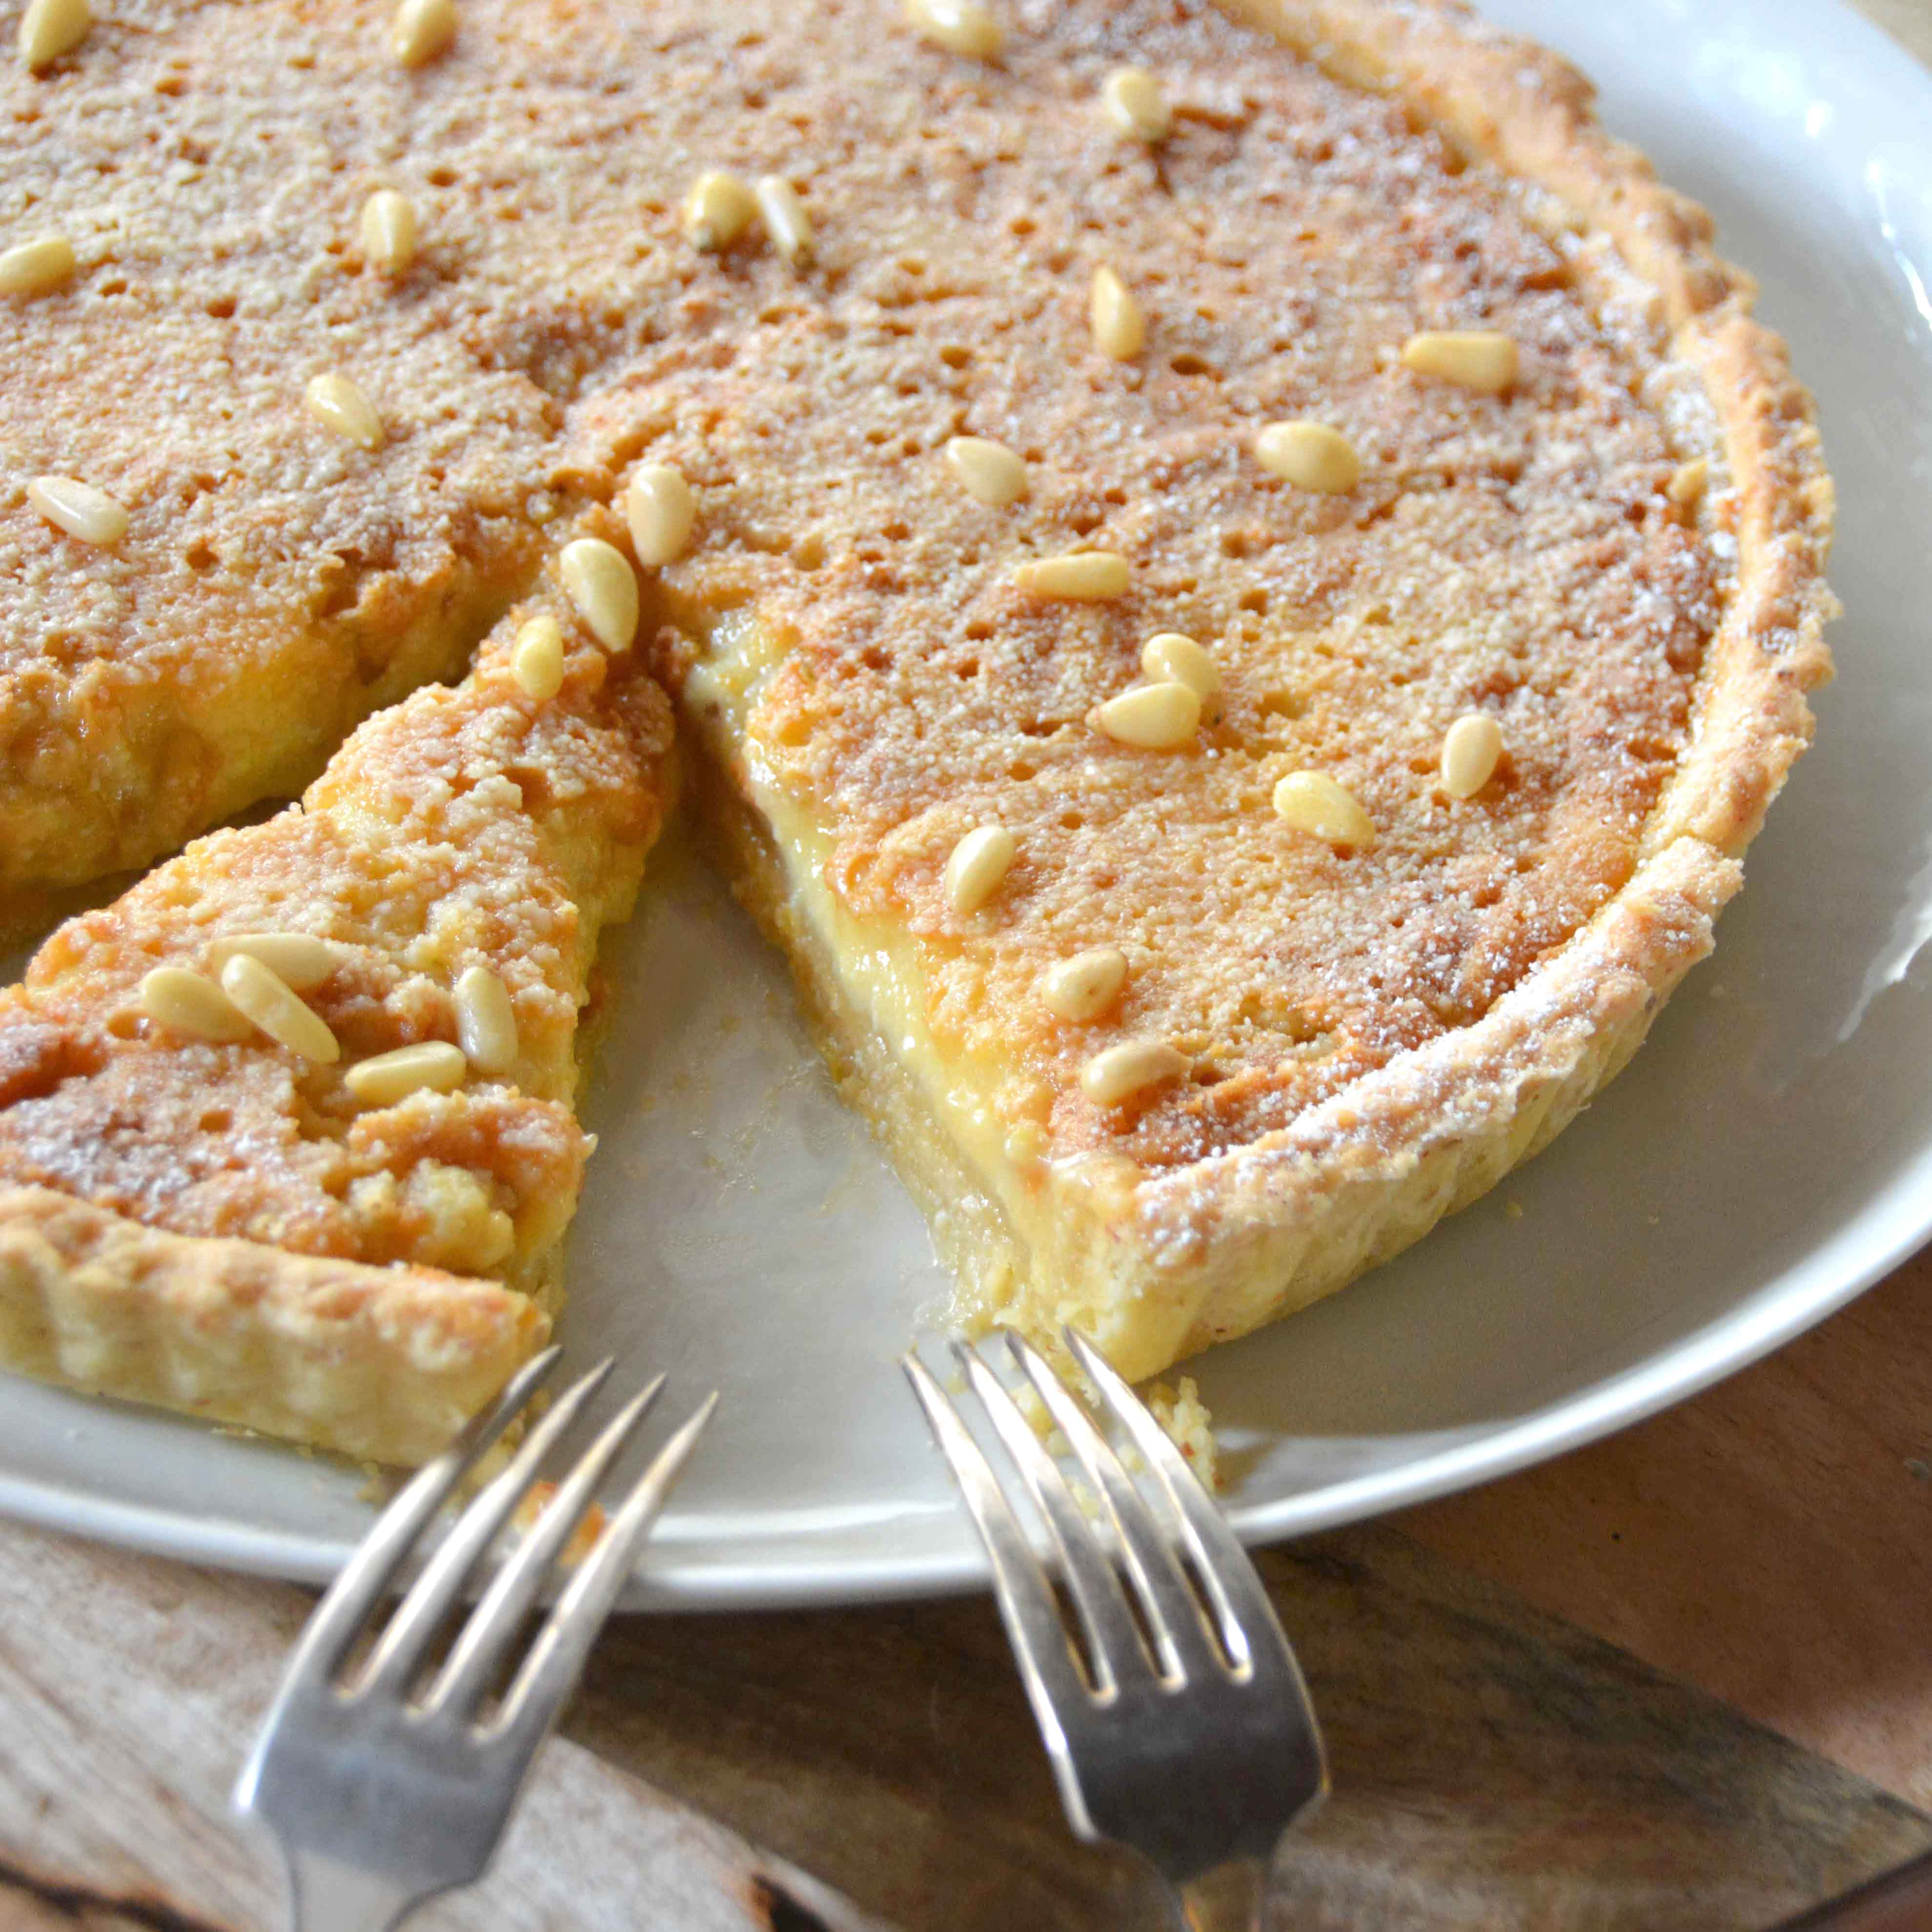 Pine nut, ricotta and lemon tart | italy on my mind